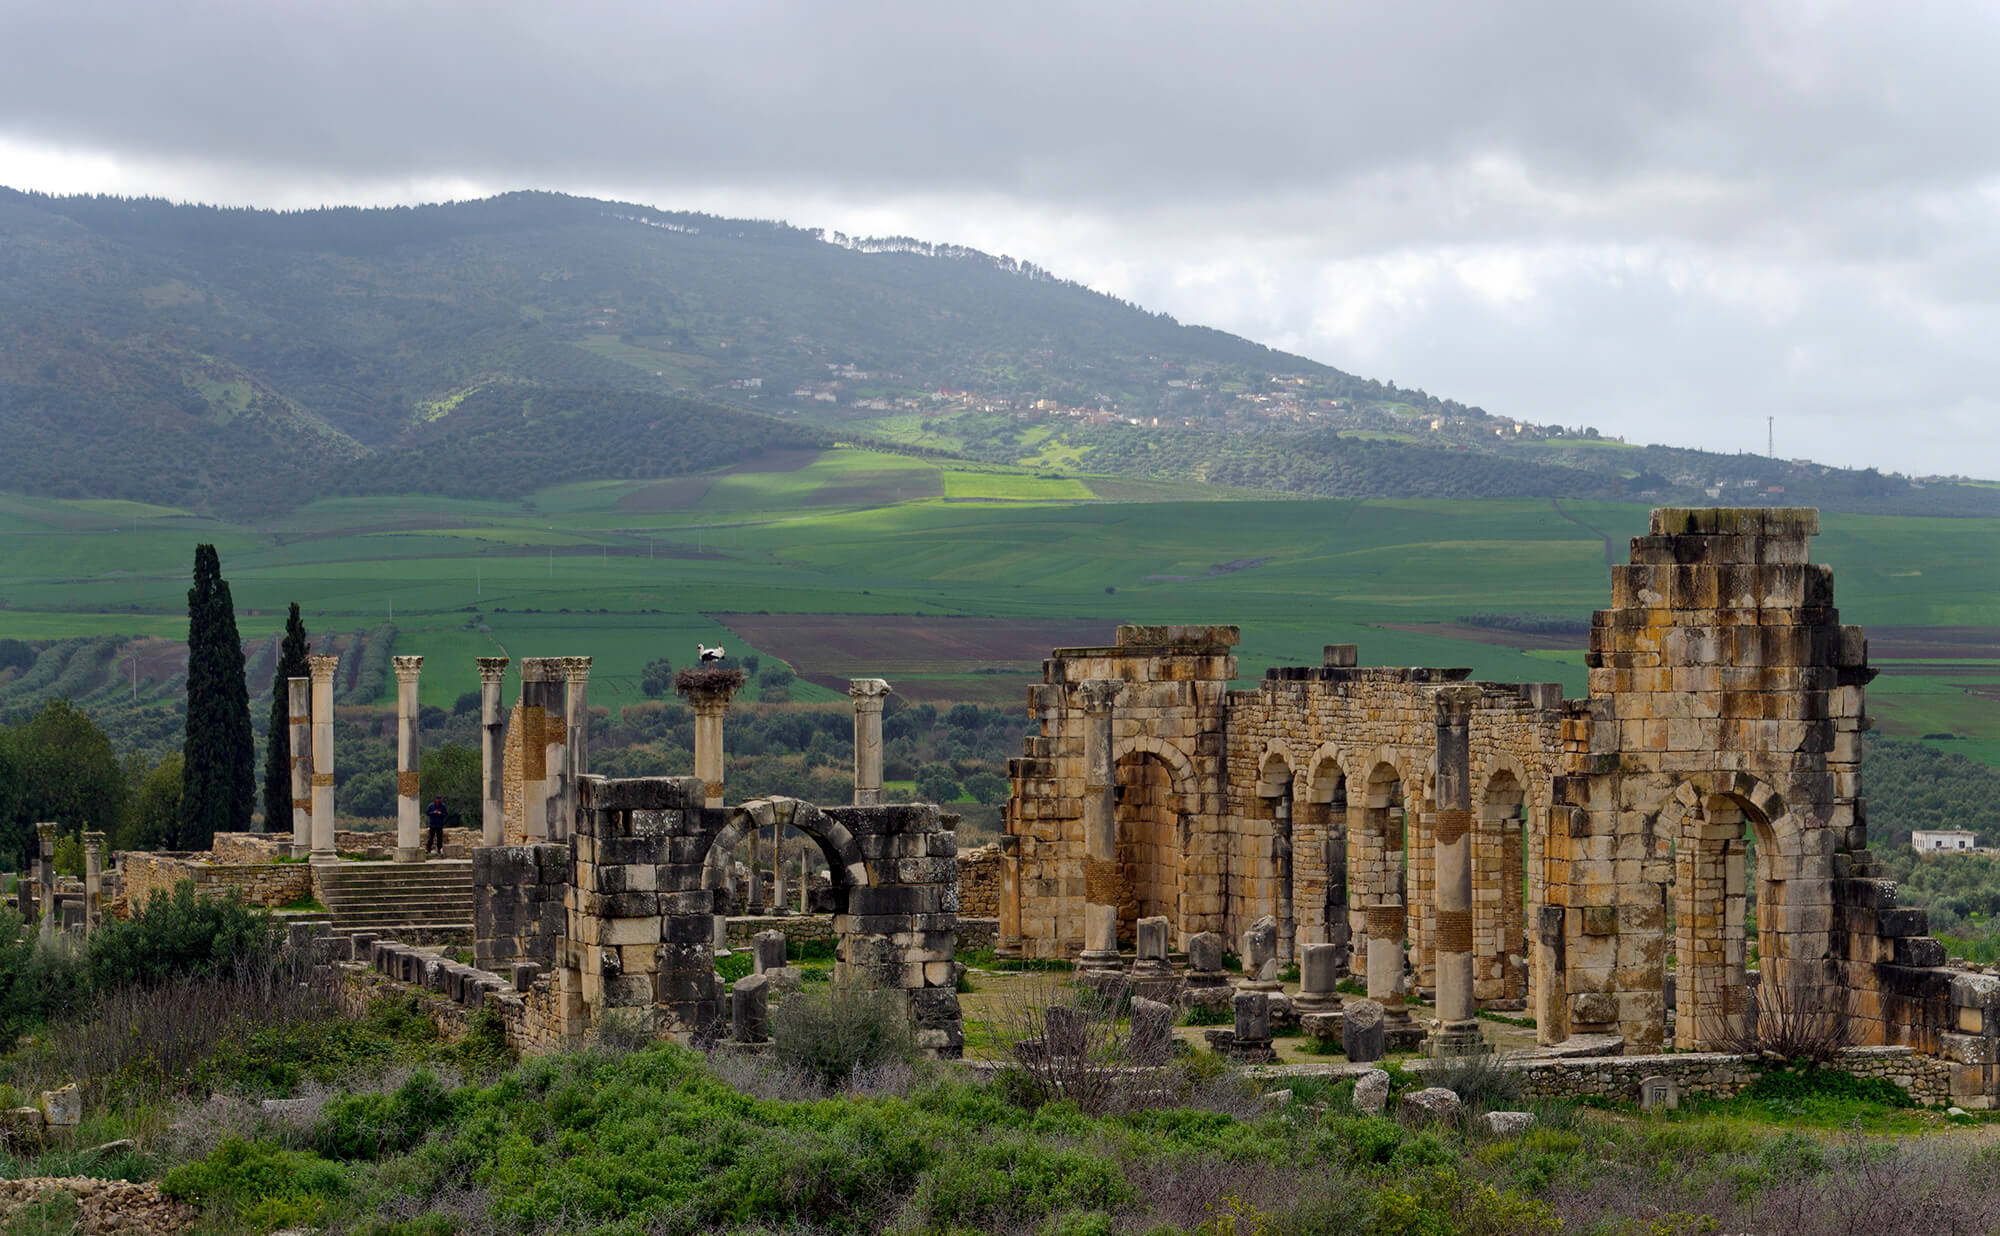 Sahara Desert Tour - What to See and Do in Meknes, one of Morocco's Grandest Ancient Cities - Volubilis